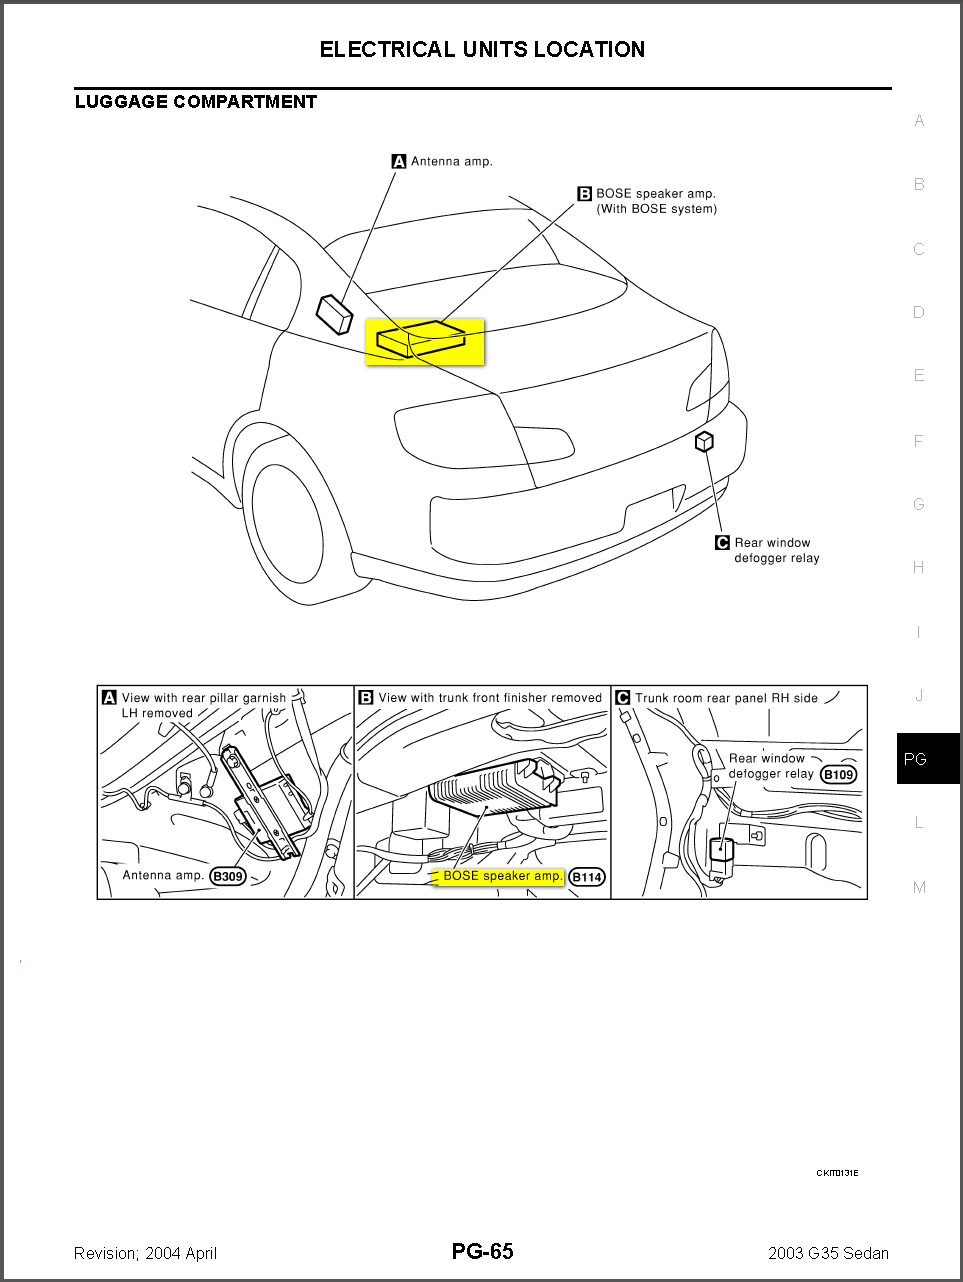 2003 infiniti g35 sedan wiring diagram - wiring diagram 2006 infiniti g35 fuse box location g35 fuse diagram #15